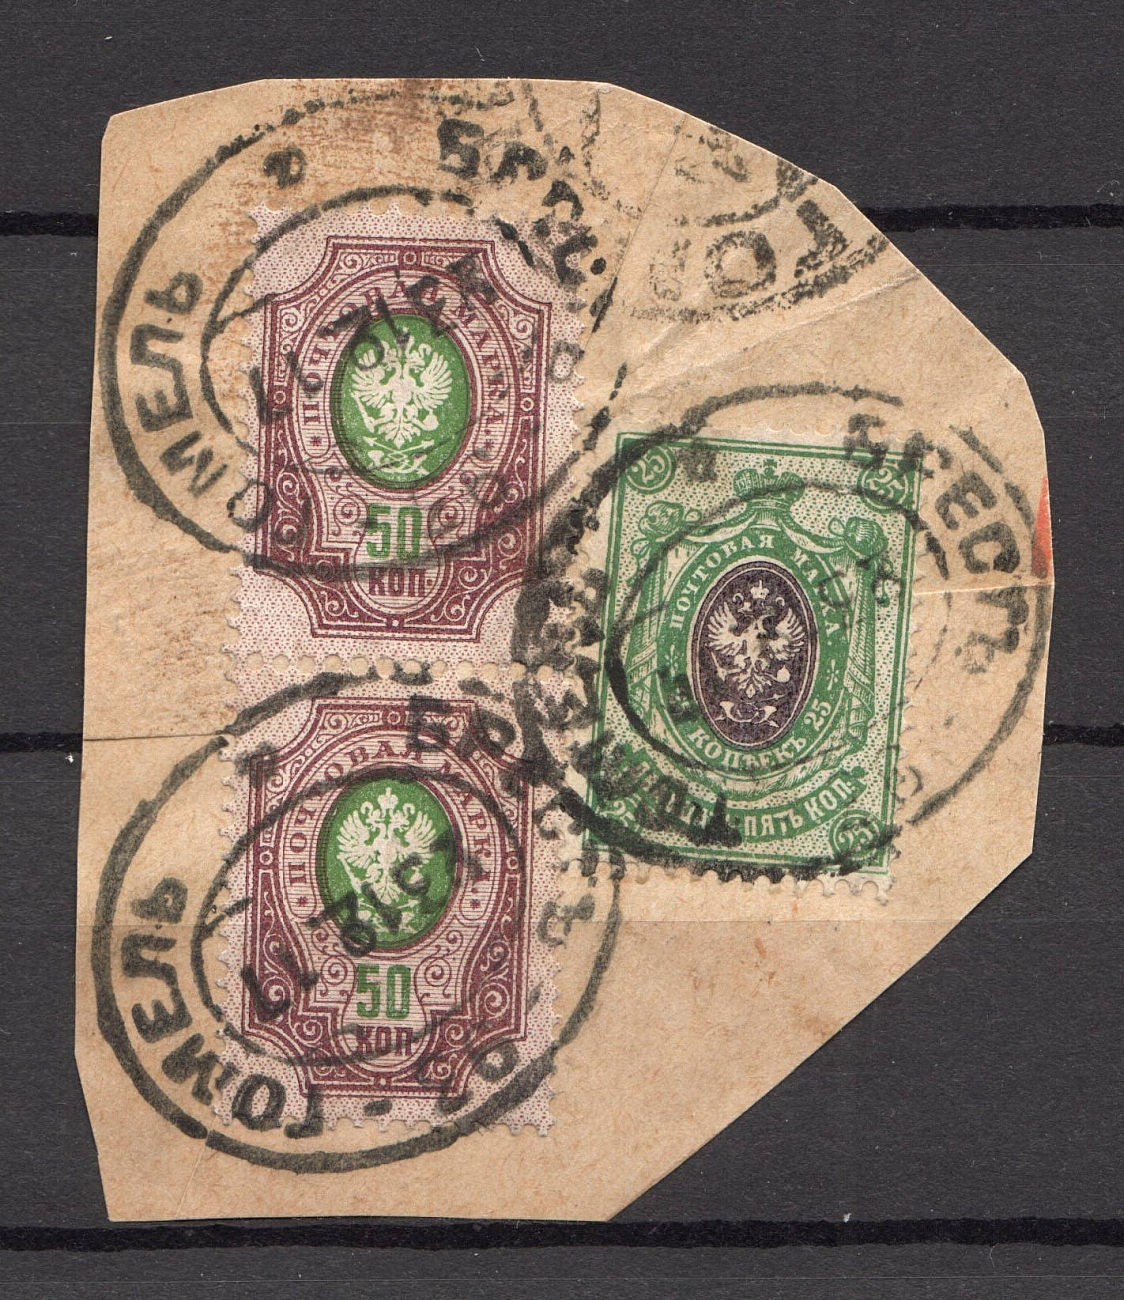 Lot 10 - Russia: Empire & Offices Abroad Russian Empire Issues -  OldLouis Auctions Russia: Empire & Offices Abroad - Rare Stamps Auction №8